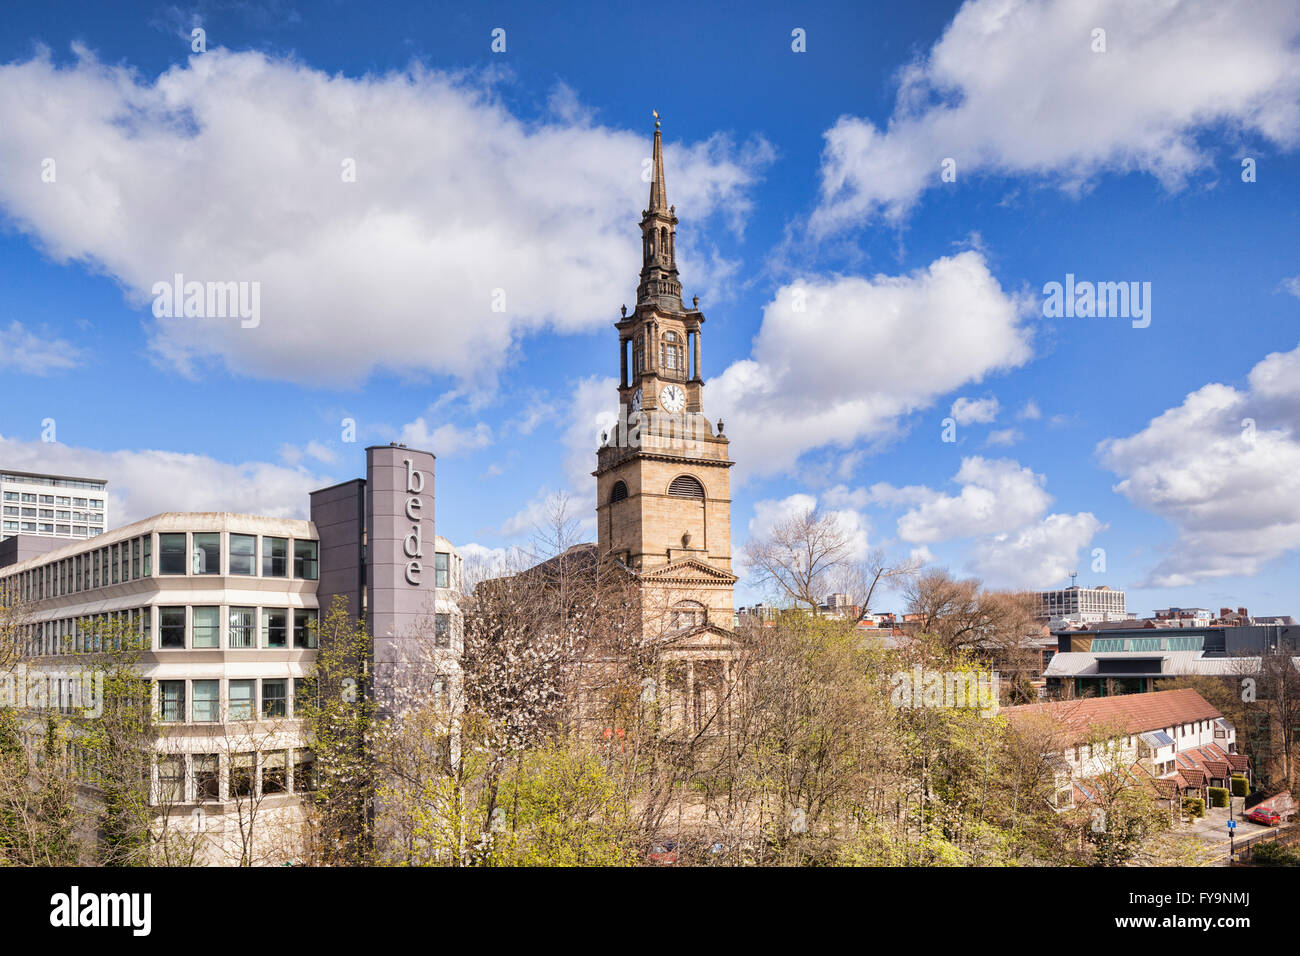 The Newcastle-upon-Tyne skyline, with Bede House and All saints Church, England, UK Stock Photo